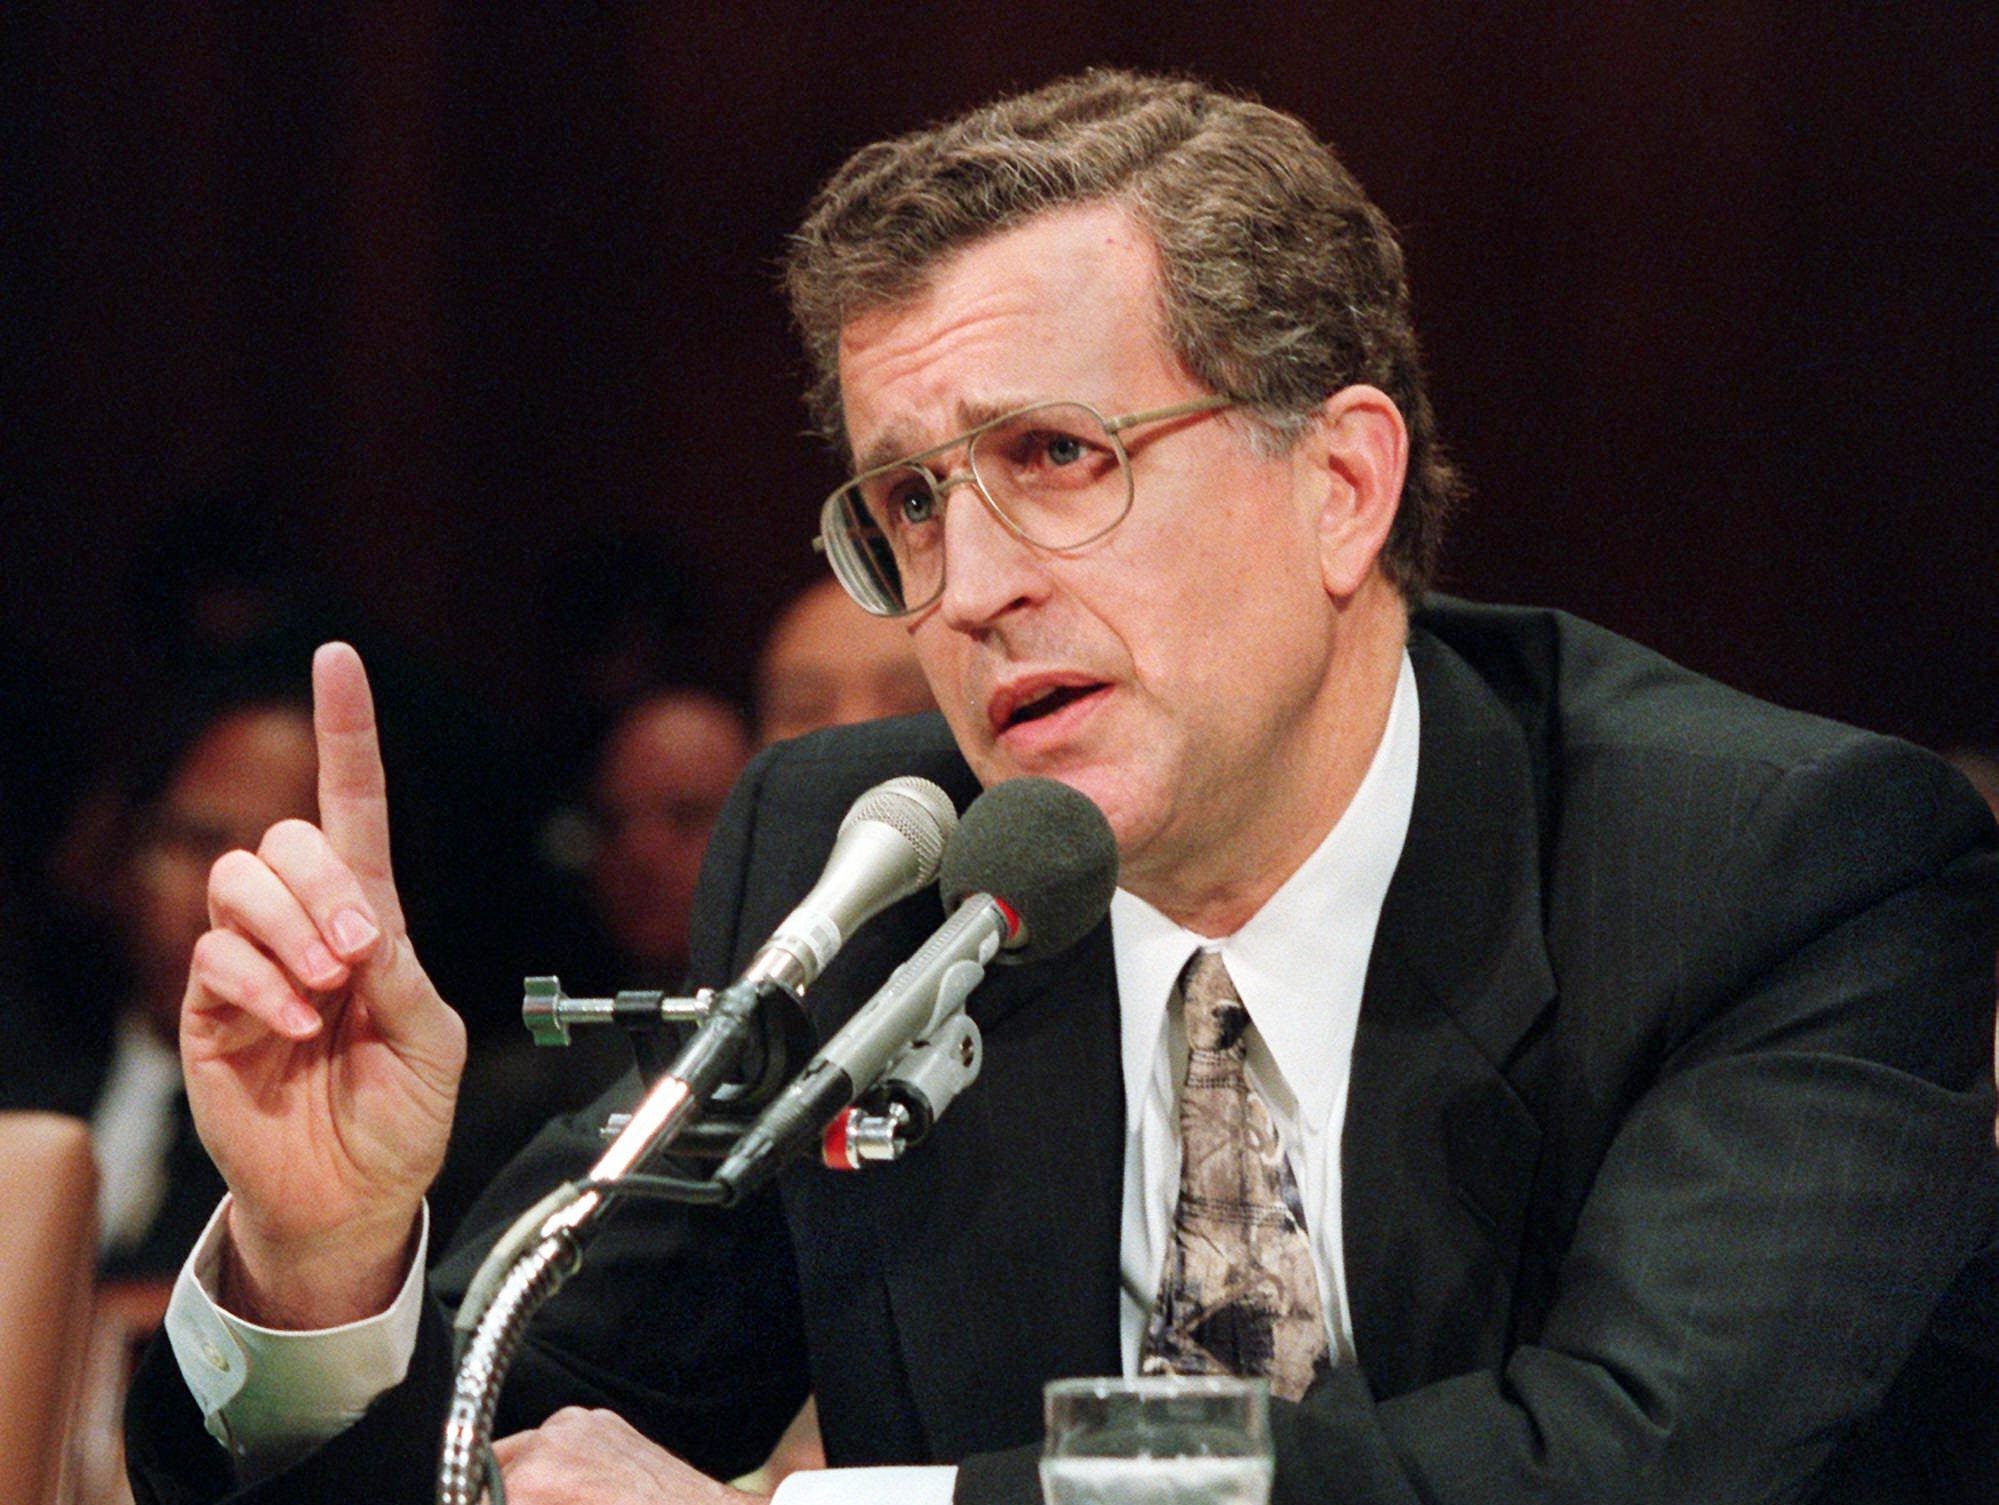 National Football League Commissioner Paul Tagliabue gestures while testifying Nov. 29, 1995 on Capitol Hill before the Senate subcommittee on Antitrust, Business Rights, and Competition hearing on relocation of professional sports franchises. The Cleveland Browns and Houston Oilers of the NFL are making plans to relocate, the Browns to Baltimore and the Oilers to Nashville.